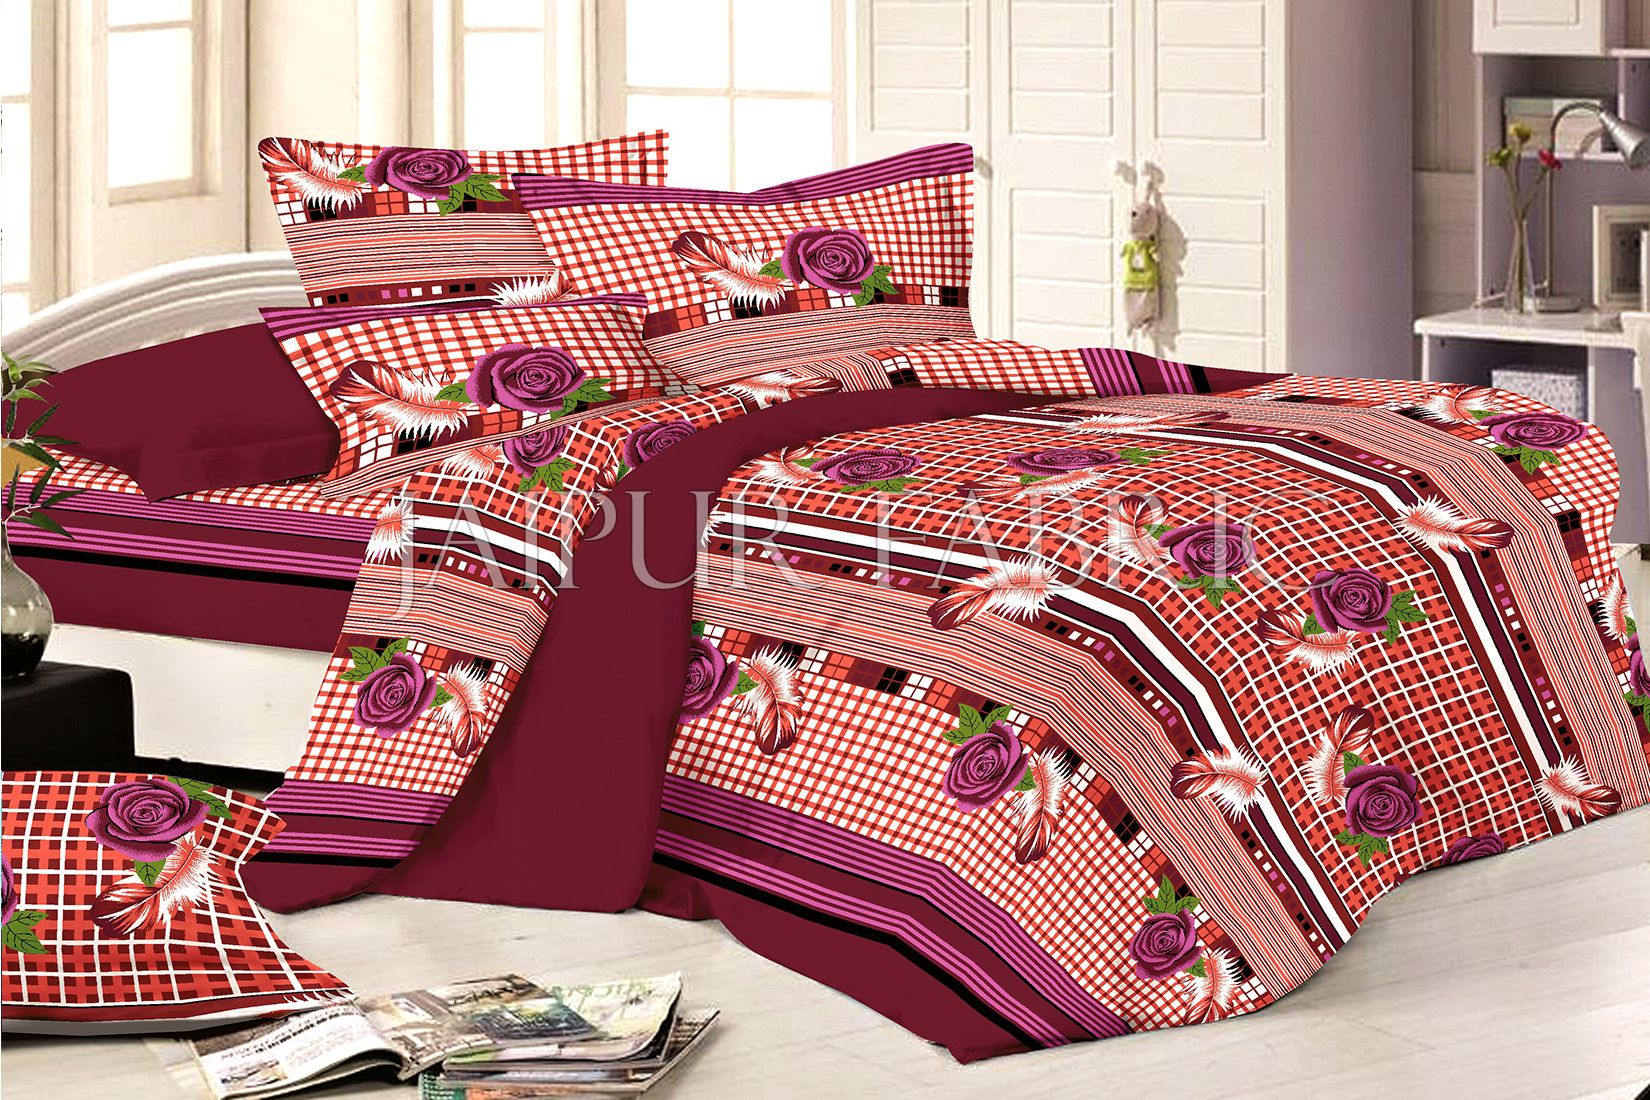 Maroon Base Flower and Feather Print Double Bed Sheet